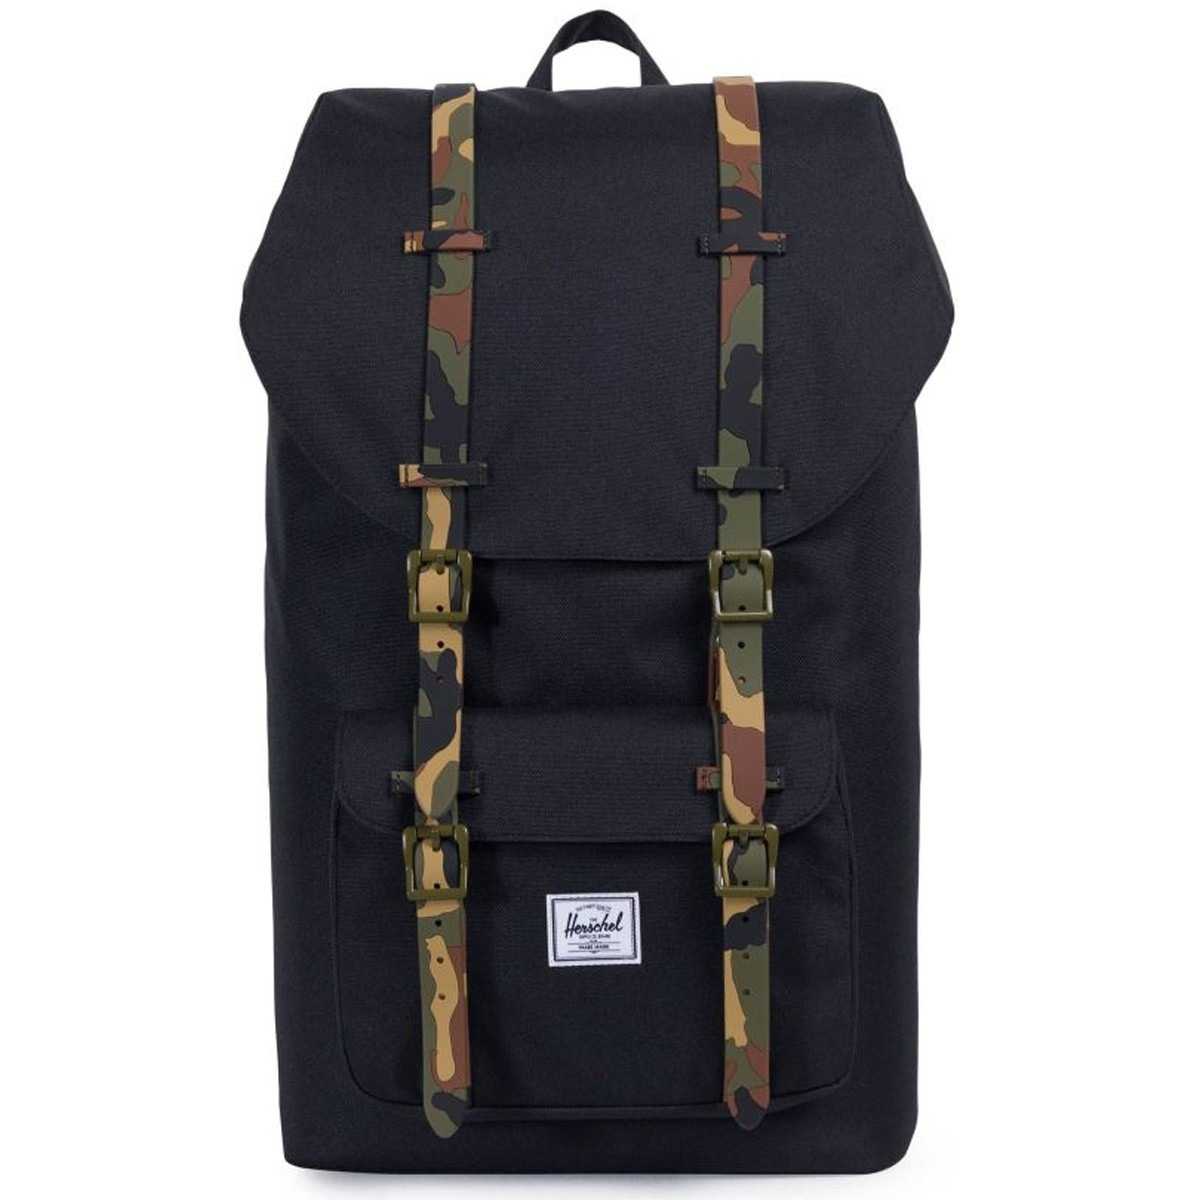 59b99f52a7b Herschel Little America Backpack - Black Woodland Camo Rubber